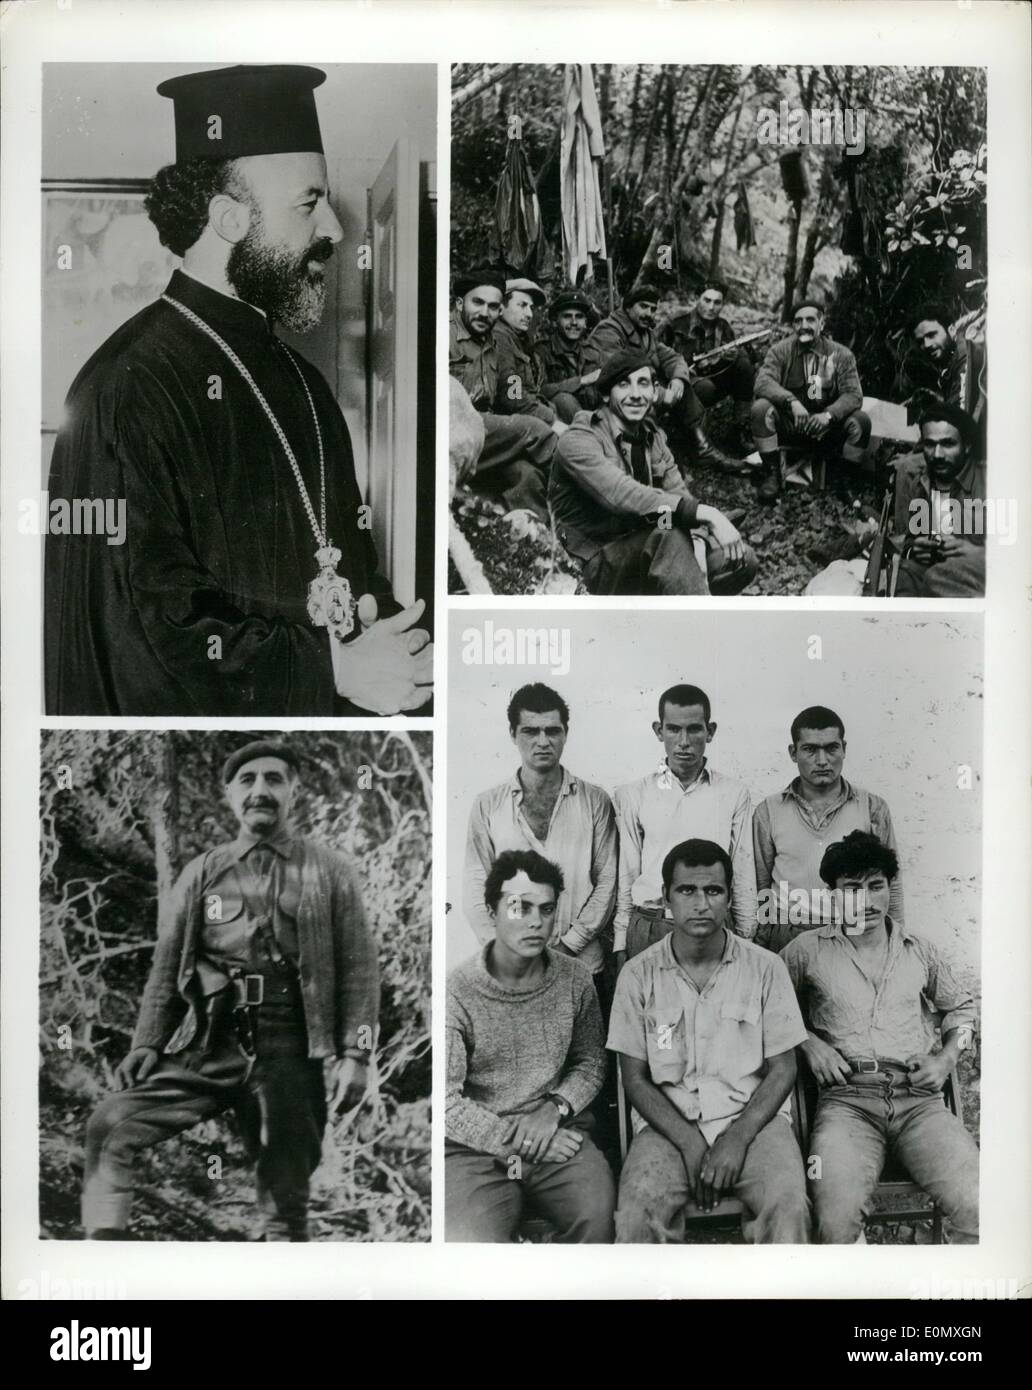 Oct. 10, 1956 - Terrorism in Cyprus: This summer the counter-terrorist forces in Cyprus captured a large number of documents, photographs and other equipment belonging to the terrorist organization EOKA (Ethniki Organosis Kyprion Agoniston - National Organization of Cypriot Combatants). A small fraction of these has been reprinted in a recently published booklet under the title of Terrorism in Cyprus. Here are some of the illustrations from the booklet. Photo shows Terrorists - Stock Image